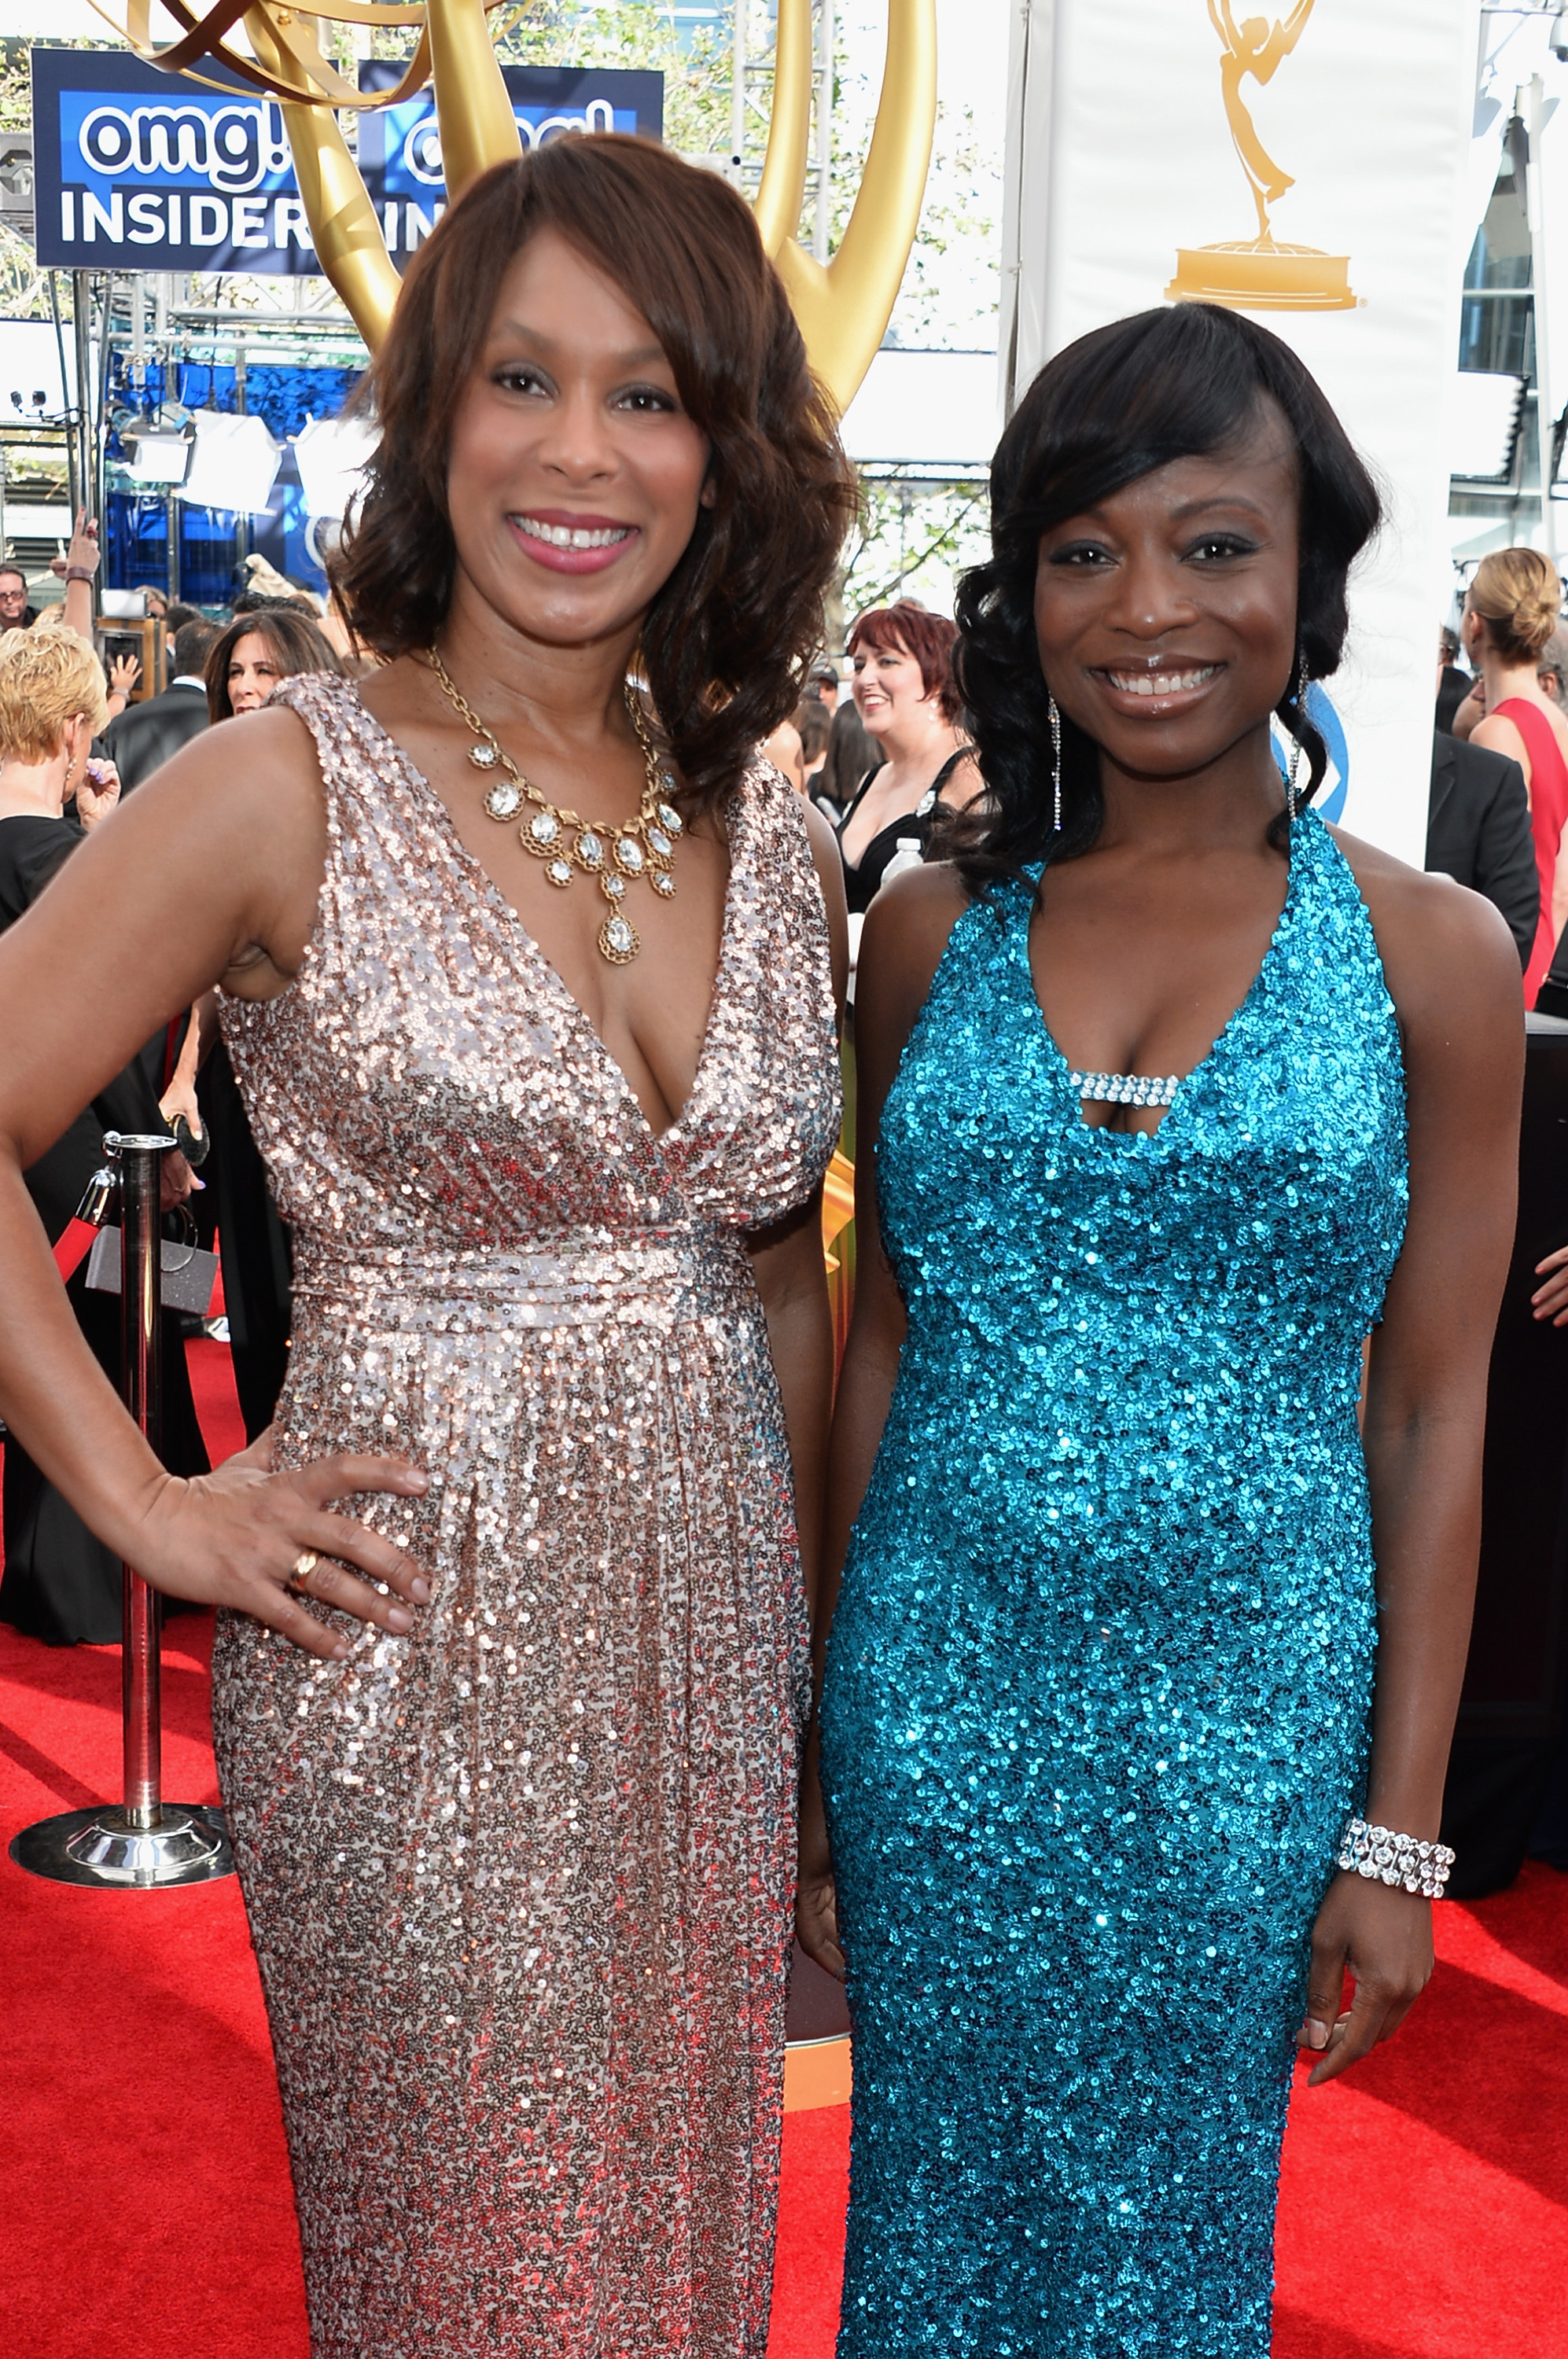 Channing Dungey Facebook page